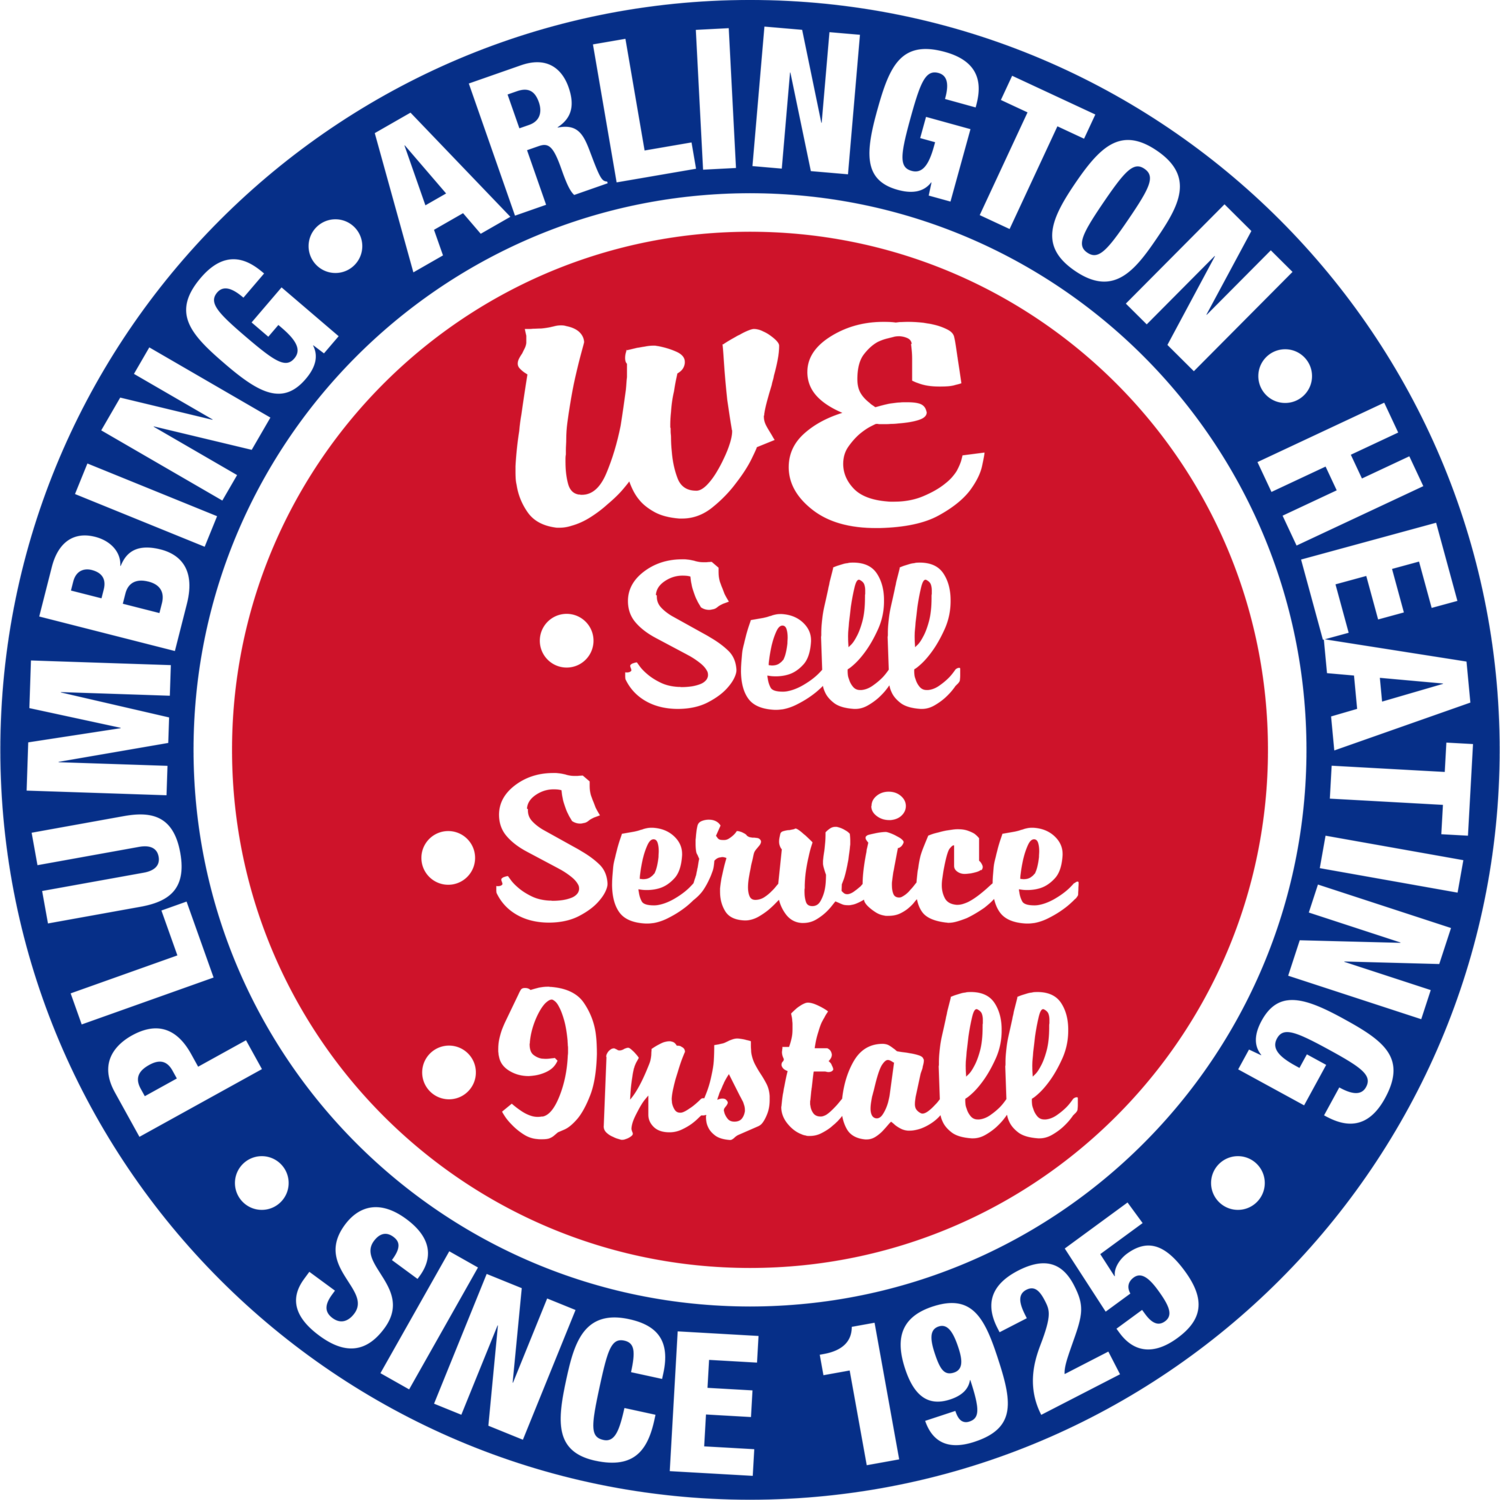 Arlington Plumbing & Heating New Jersey (NJ)